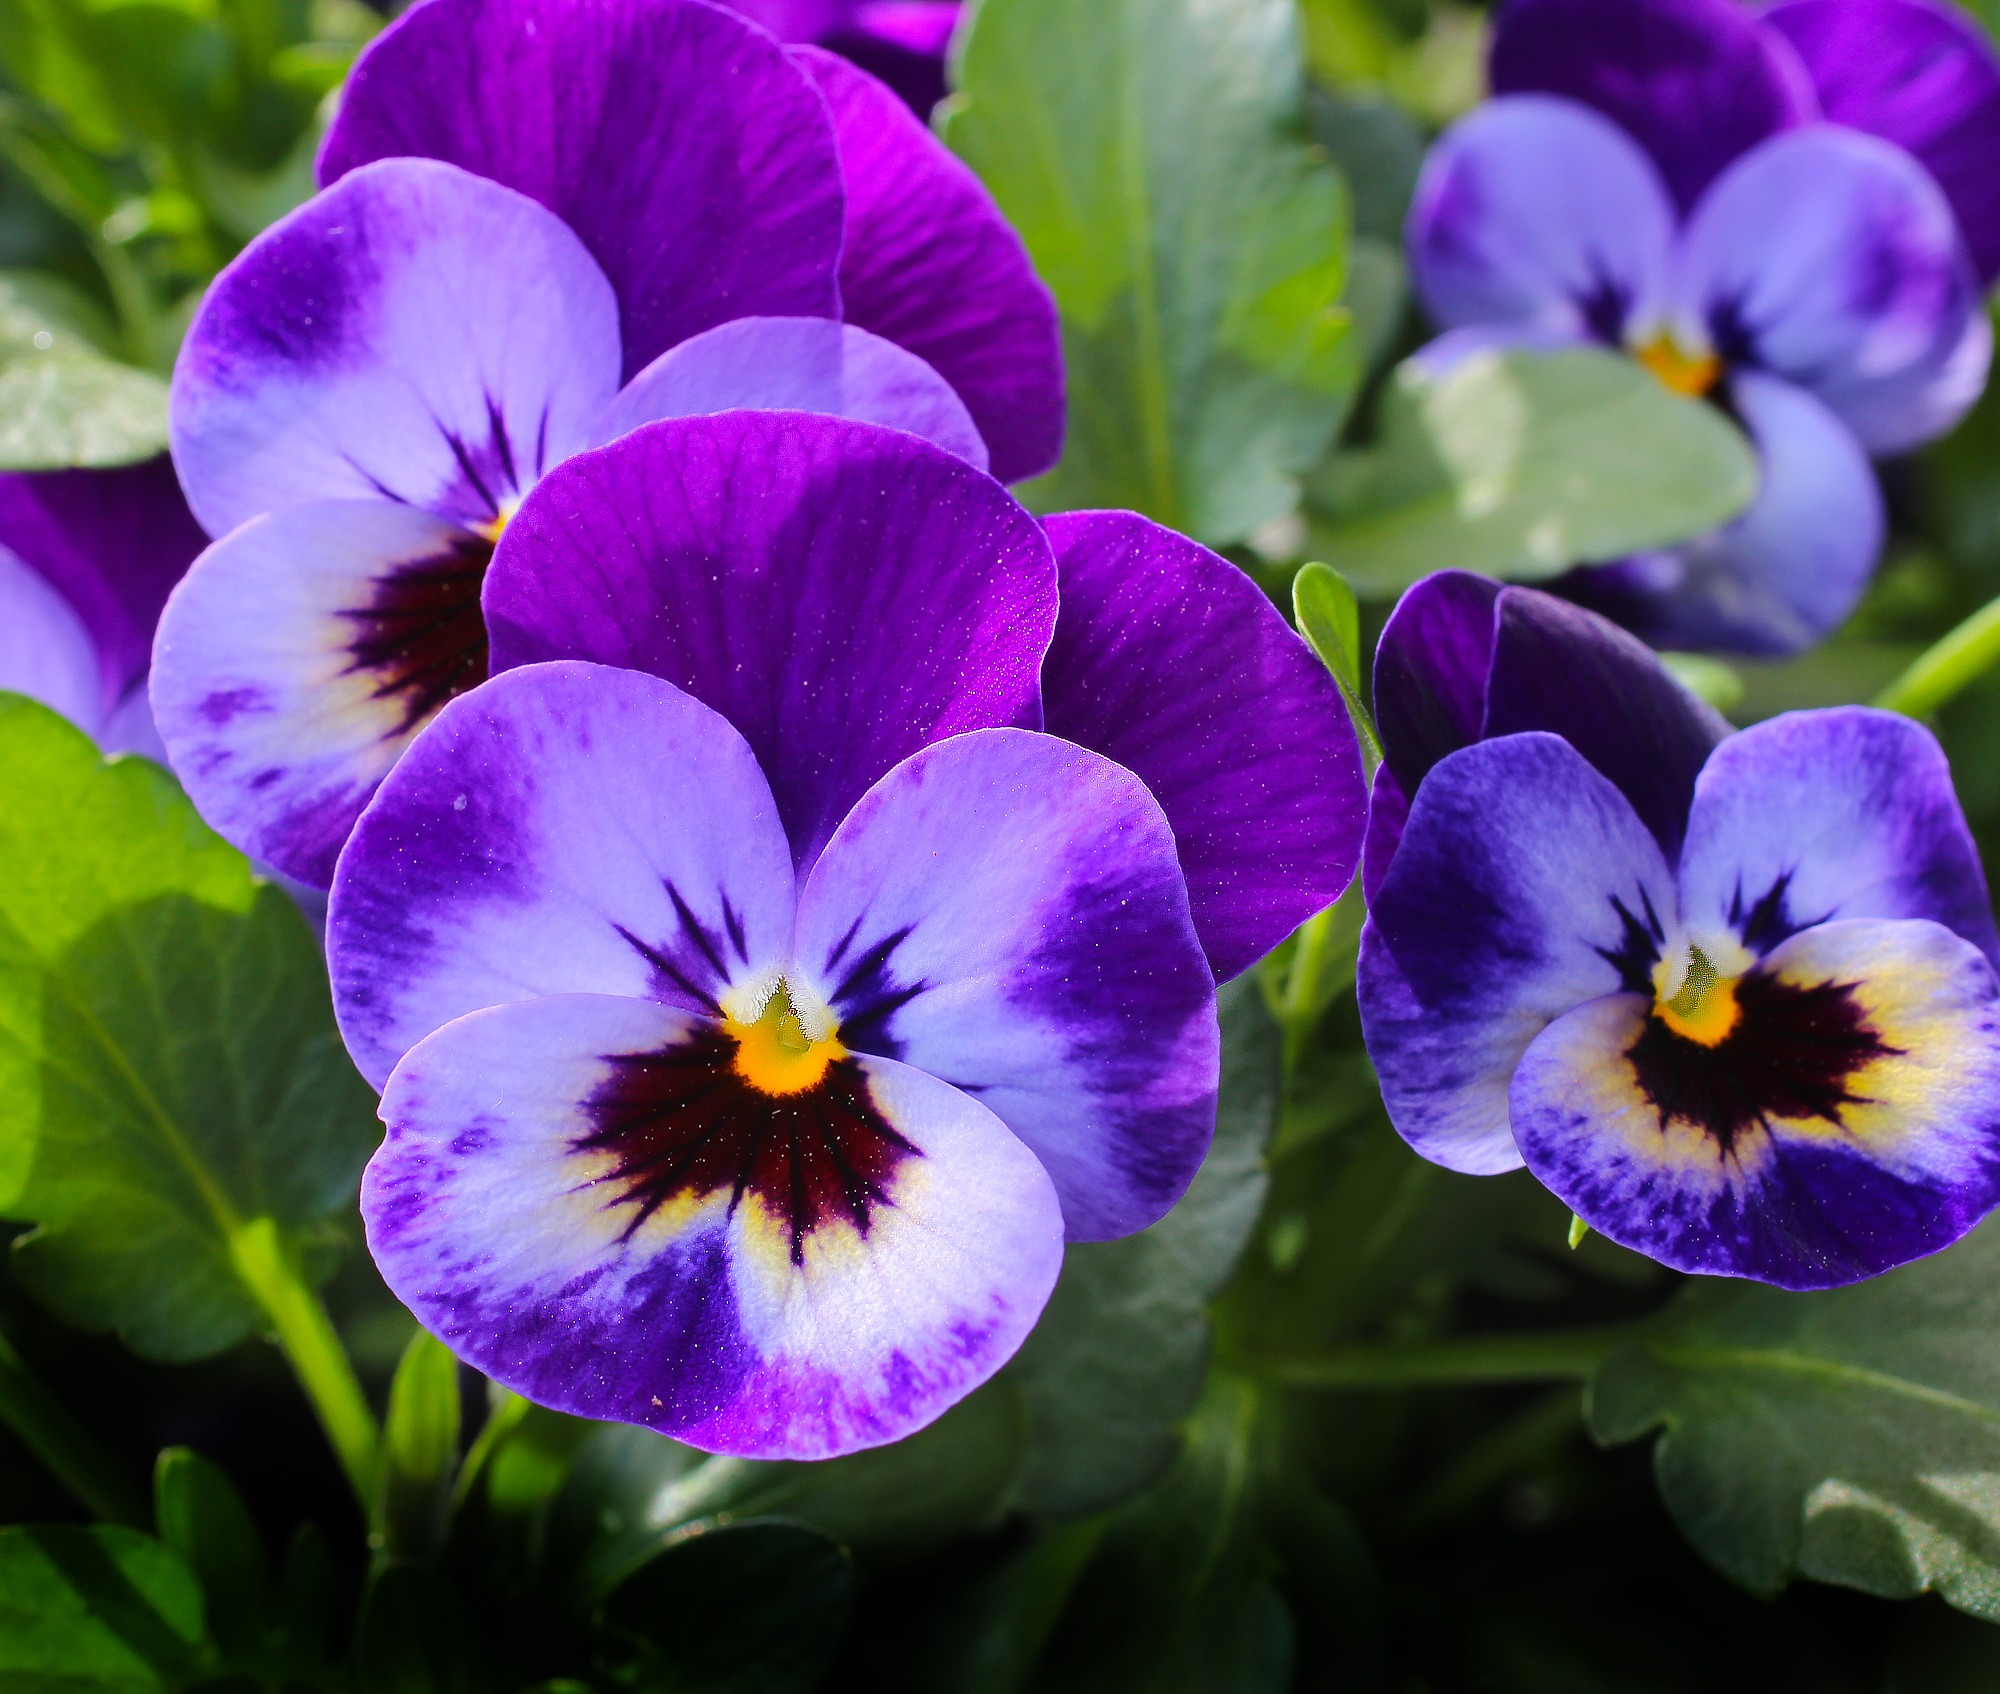 pansy-flowers-plant-nature-57394.jpeg (2000×1694)